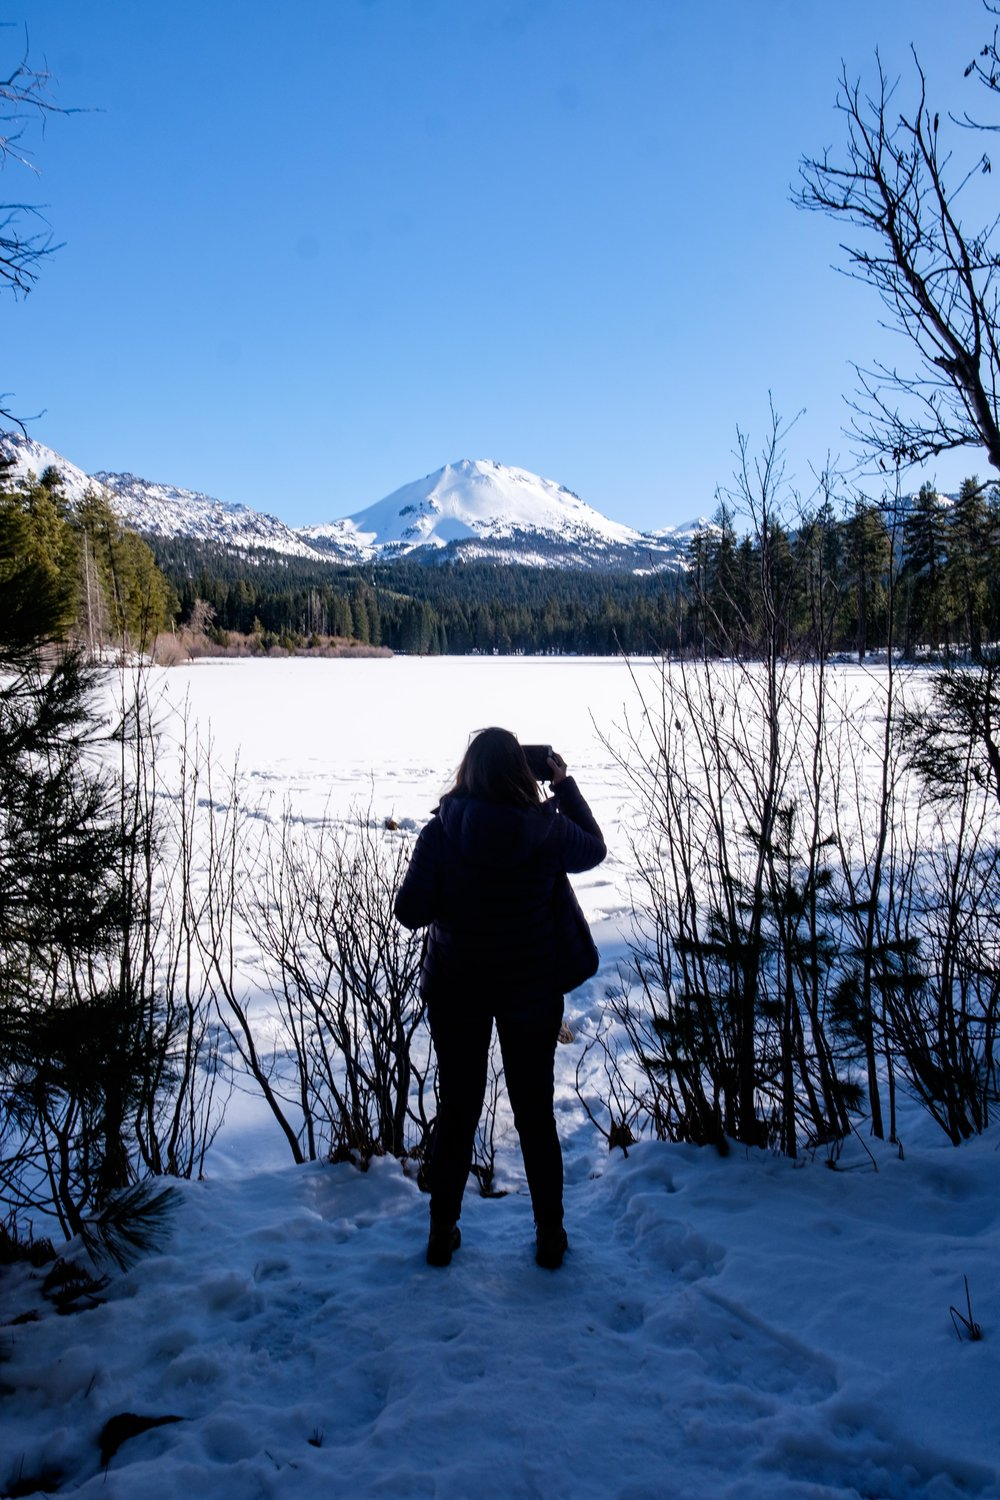 A fantastic hike around the frozen Manzanita Lake.